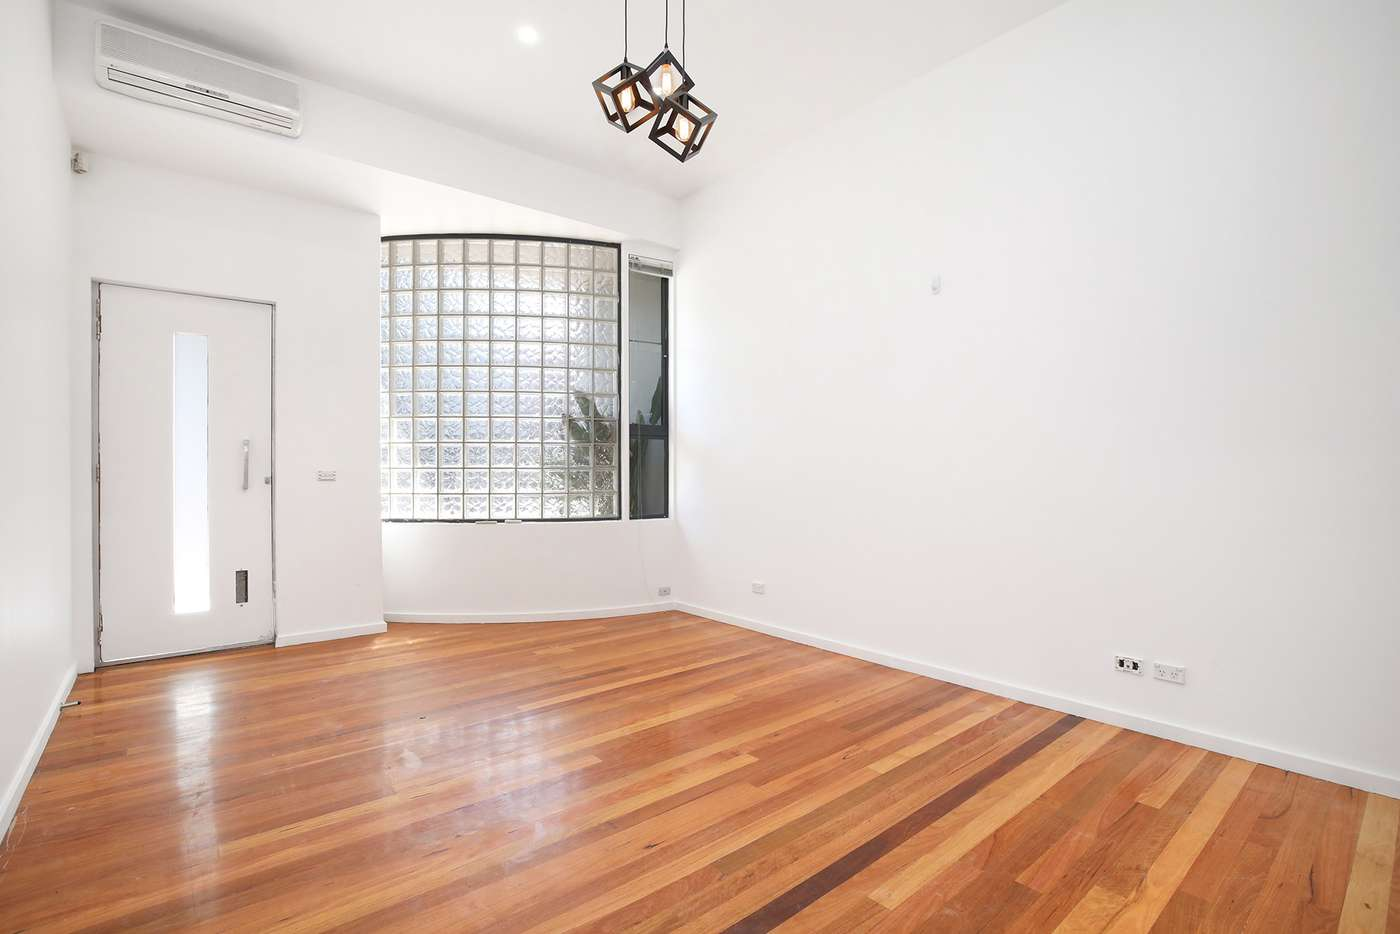 Fifth view of Homely house listing, 35a Park Street, South Melbourne VIC 3205